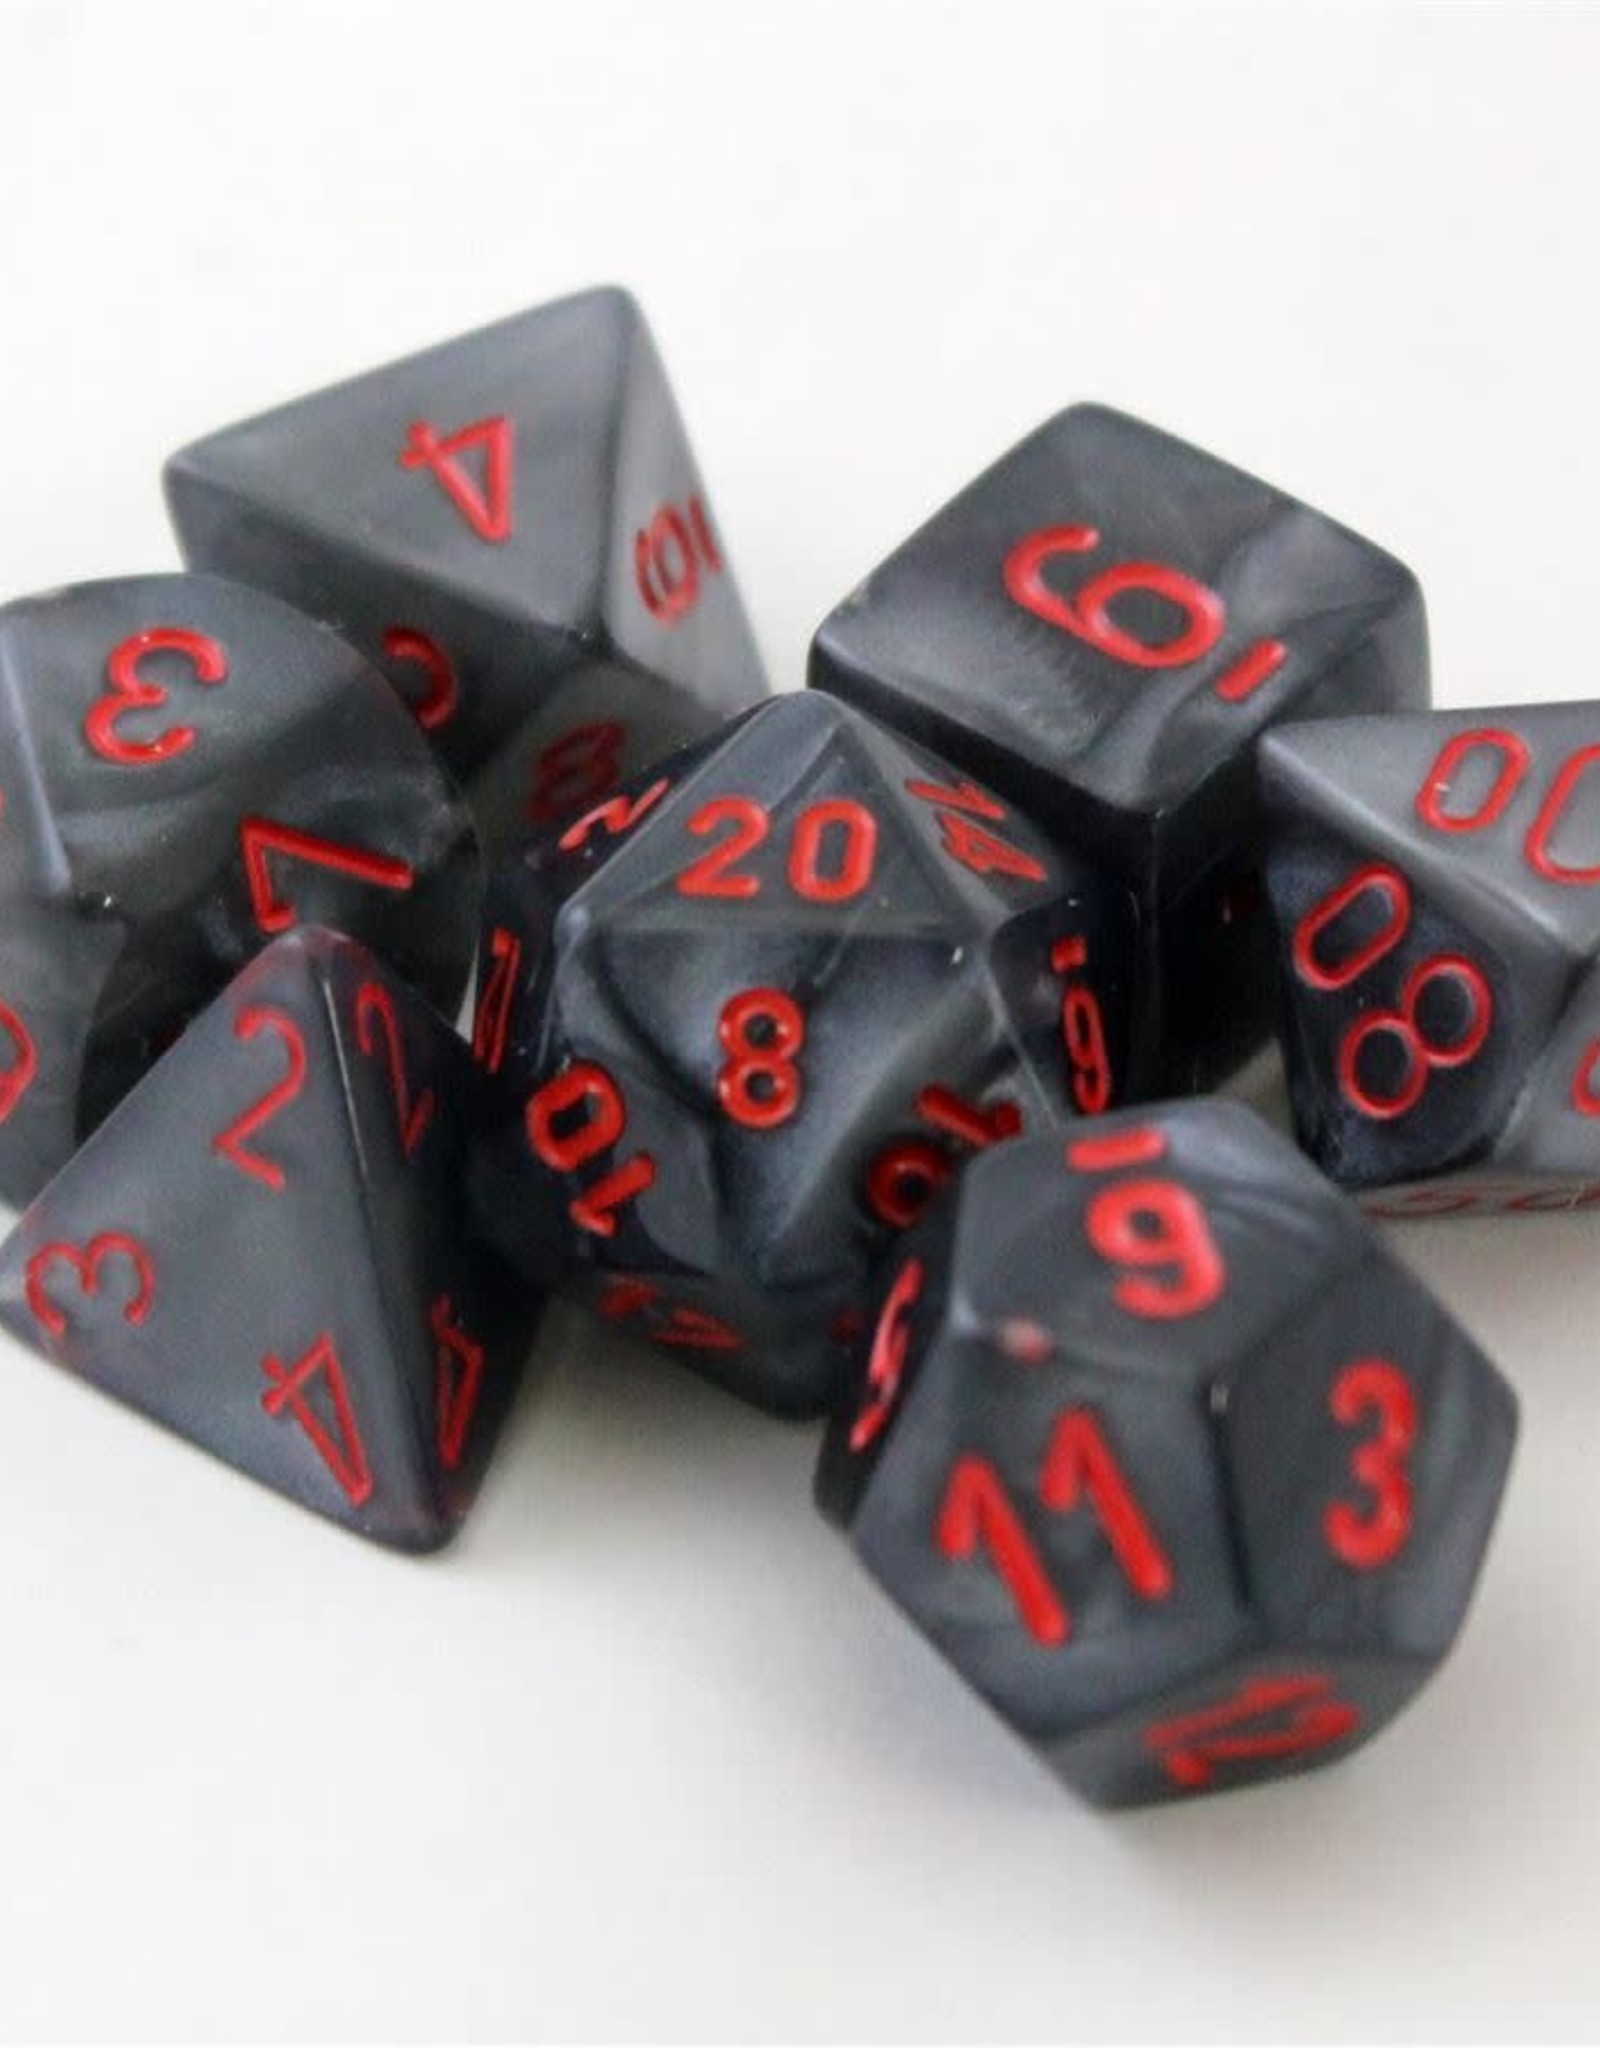 Chessex Black w/red Velvet Poly 7 dice set